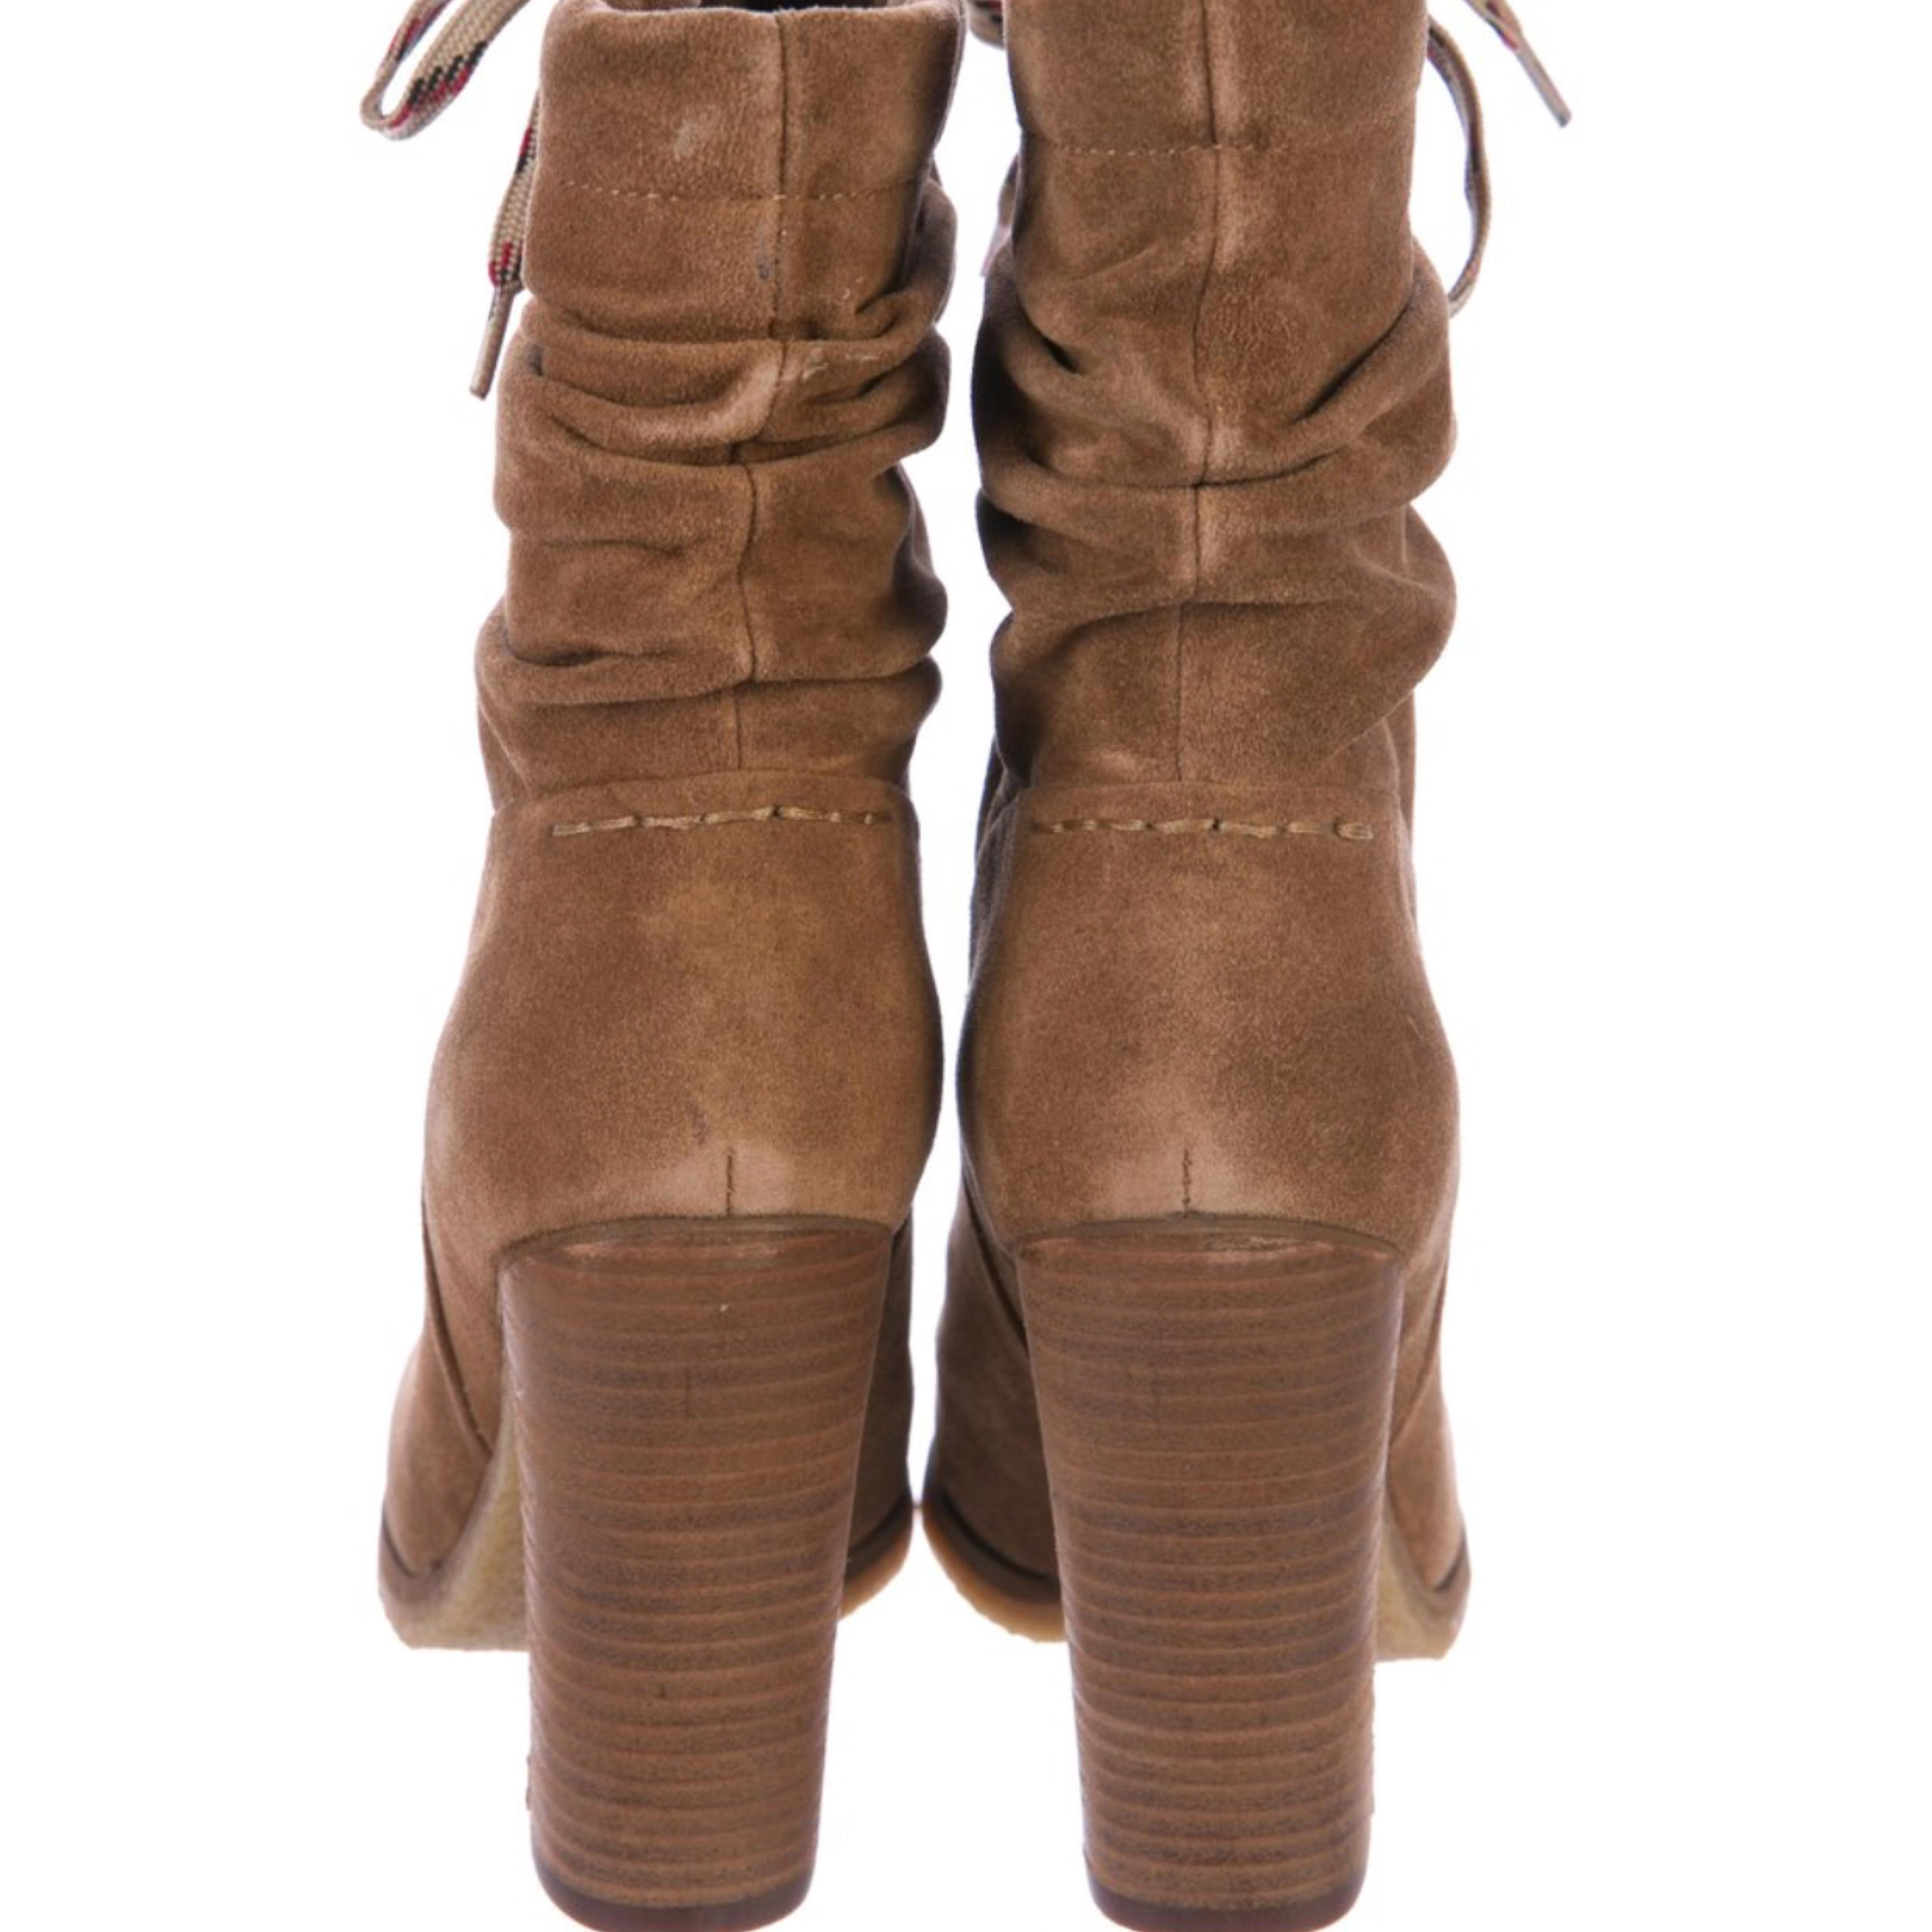 c25d15296c6 ... See by Chloé Camel Camel Camel Slouchy Ankle Boots Booties Size US 6  Regular ...